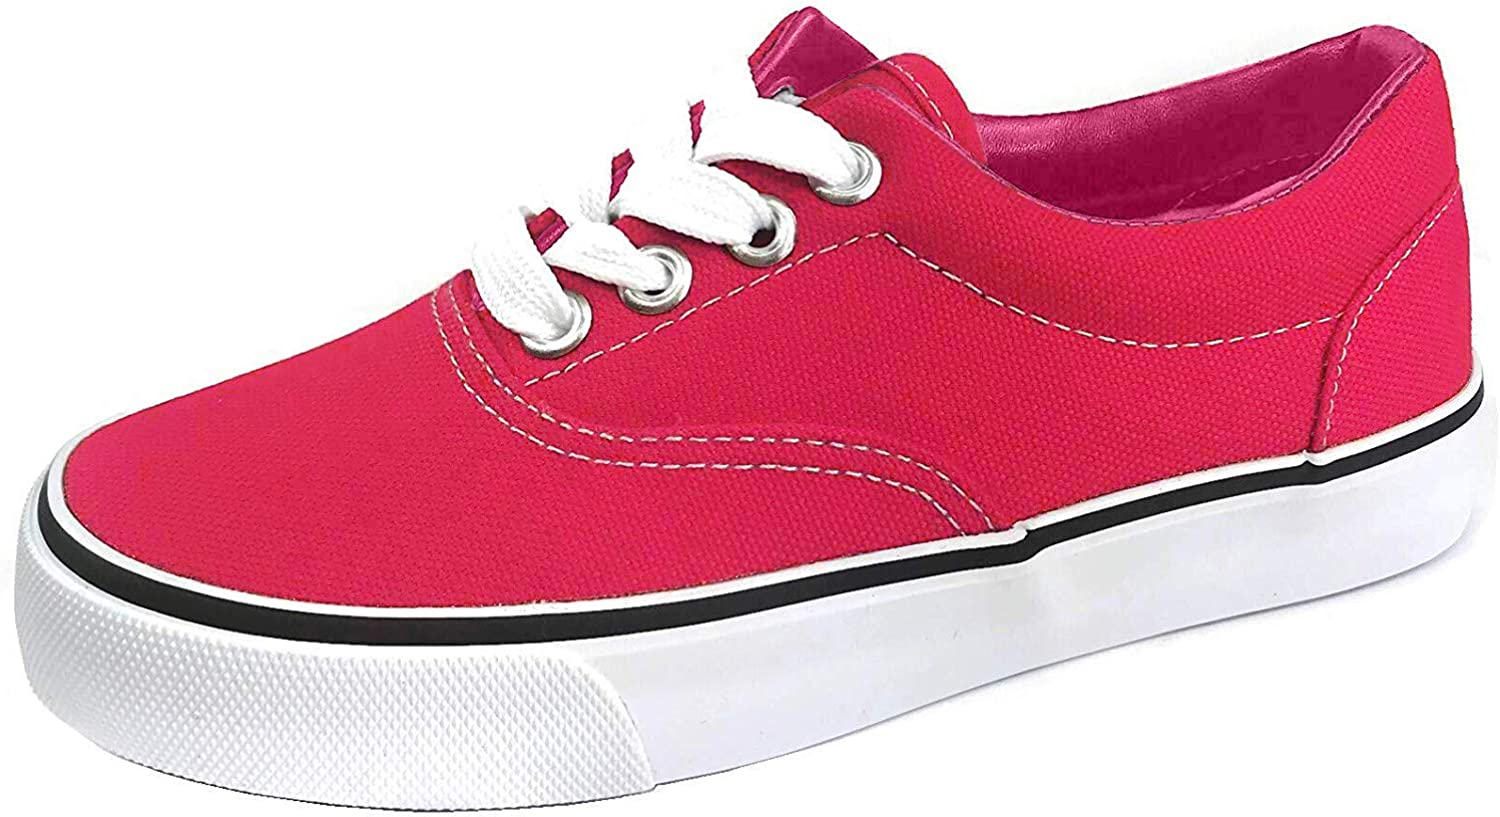 Kids Classic Lace-Up Sneaker Shoes for Boys and Girls